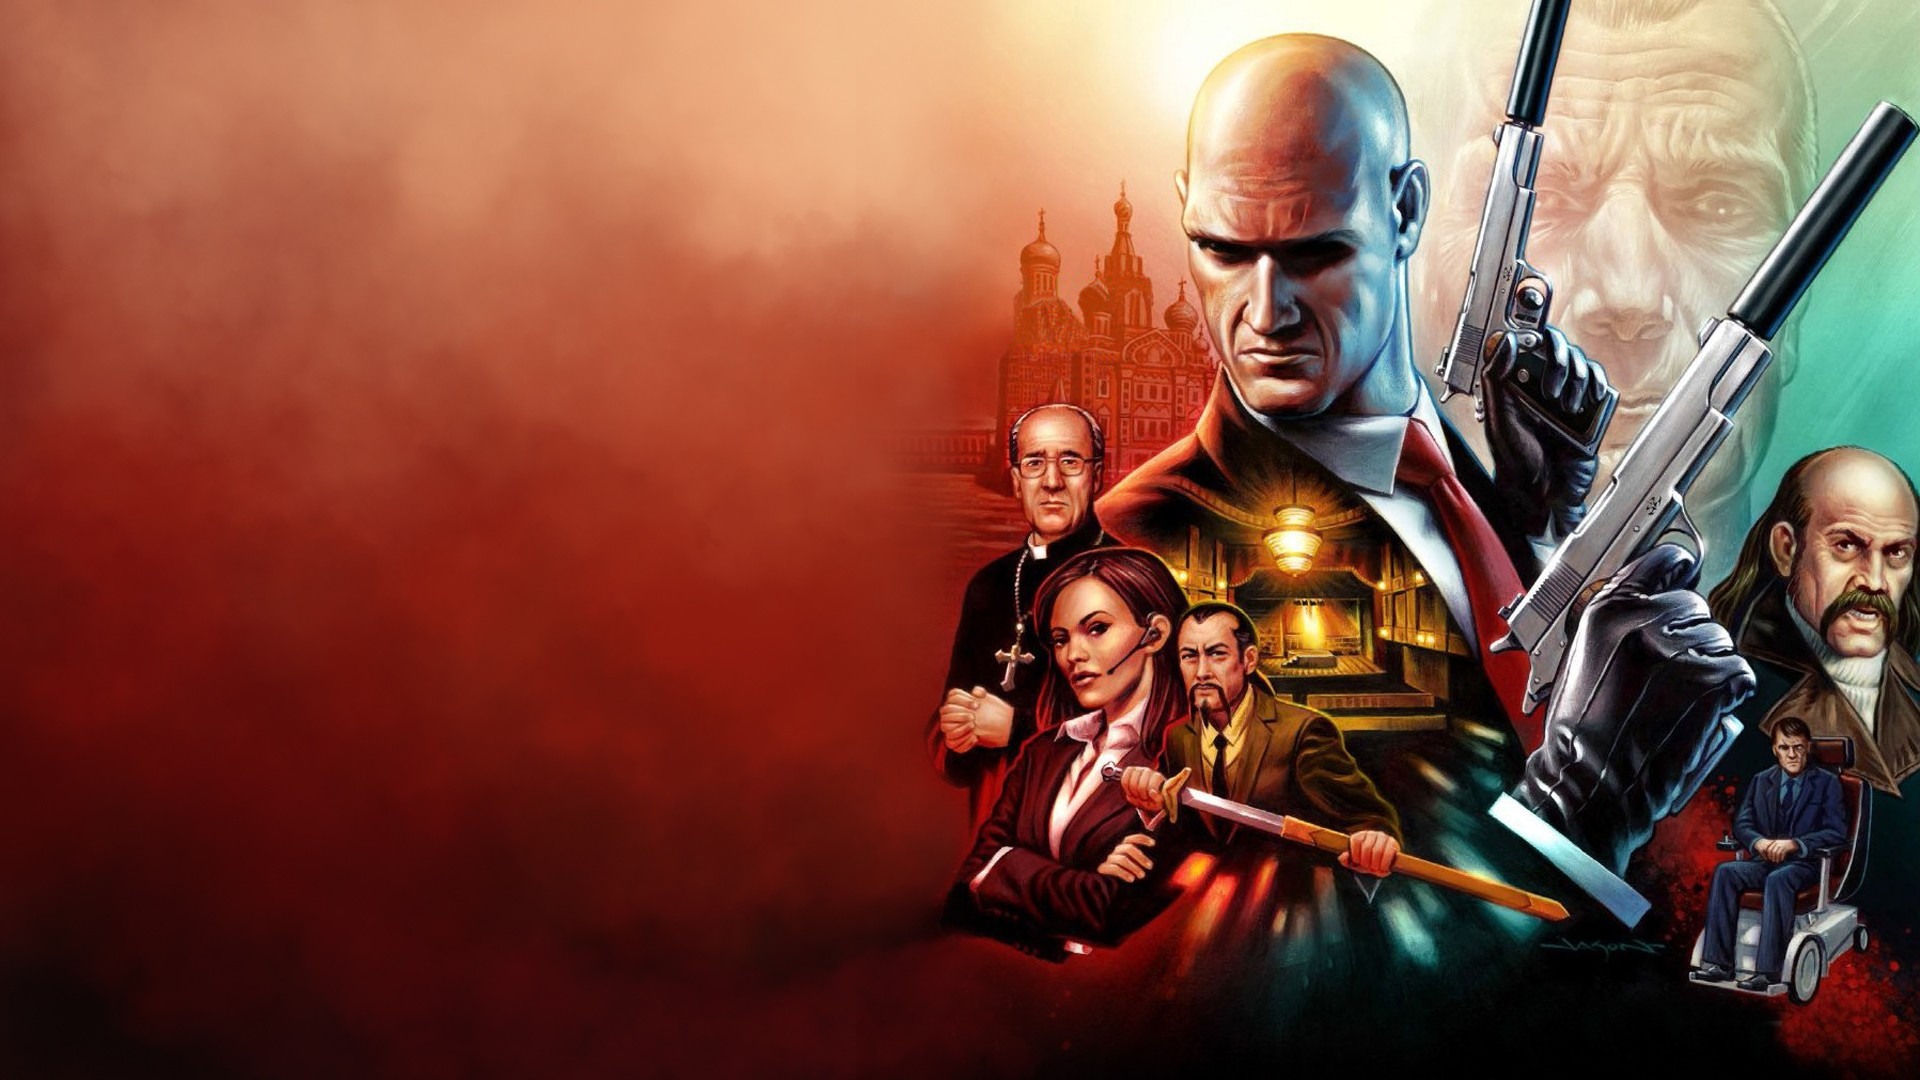 Hitman Wallpaper Full Hd Wallpapersafari